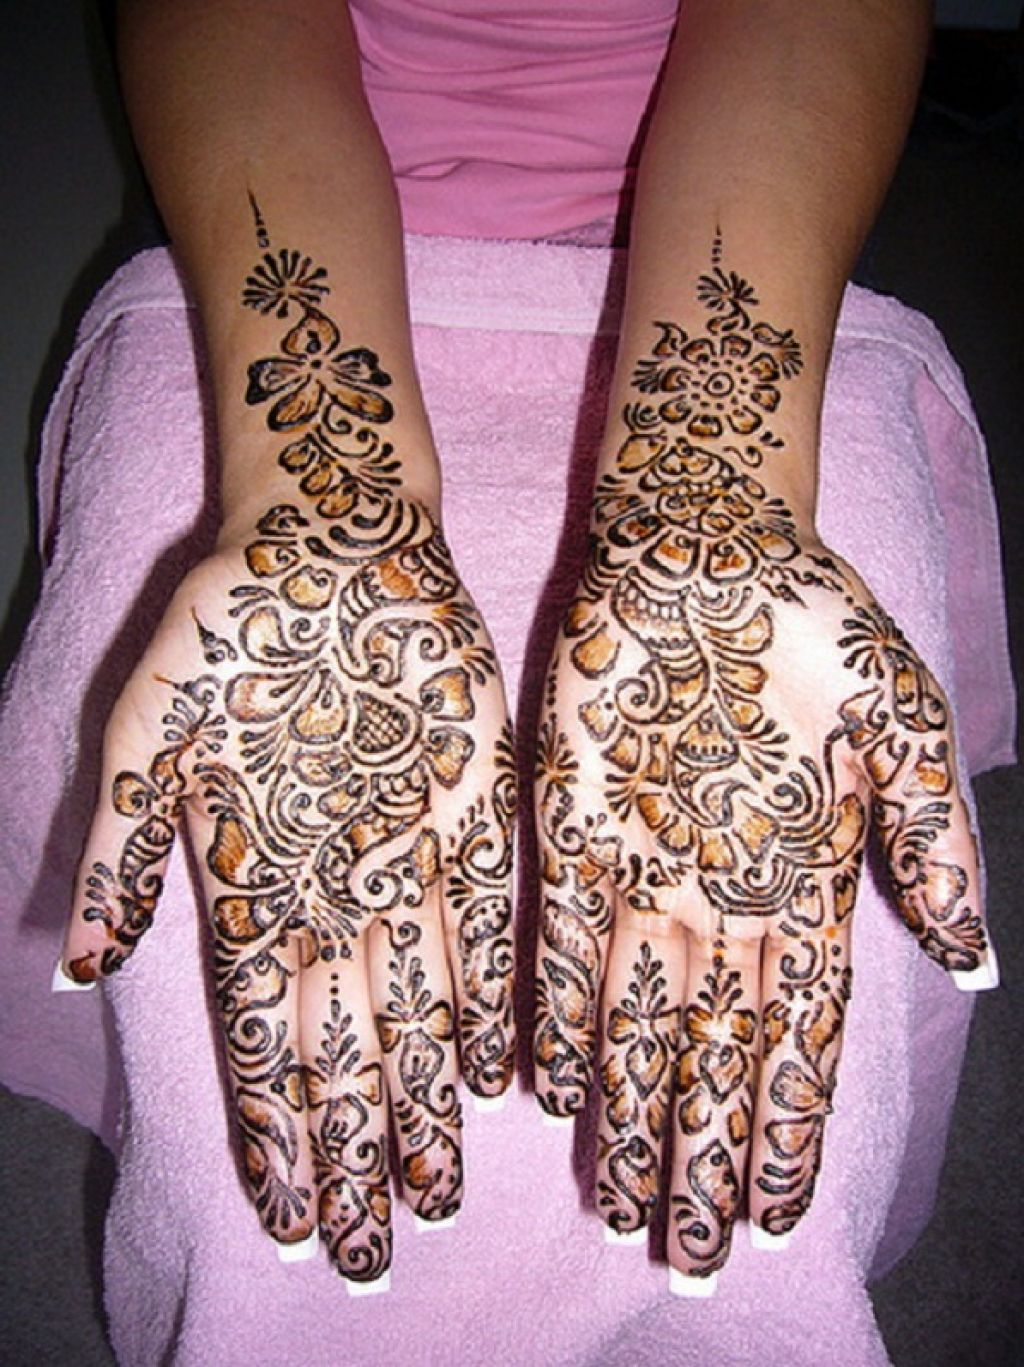 Henna Tattoo Designs For Ribs: Henna Tattoo Images & Designs